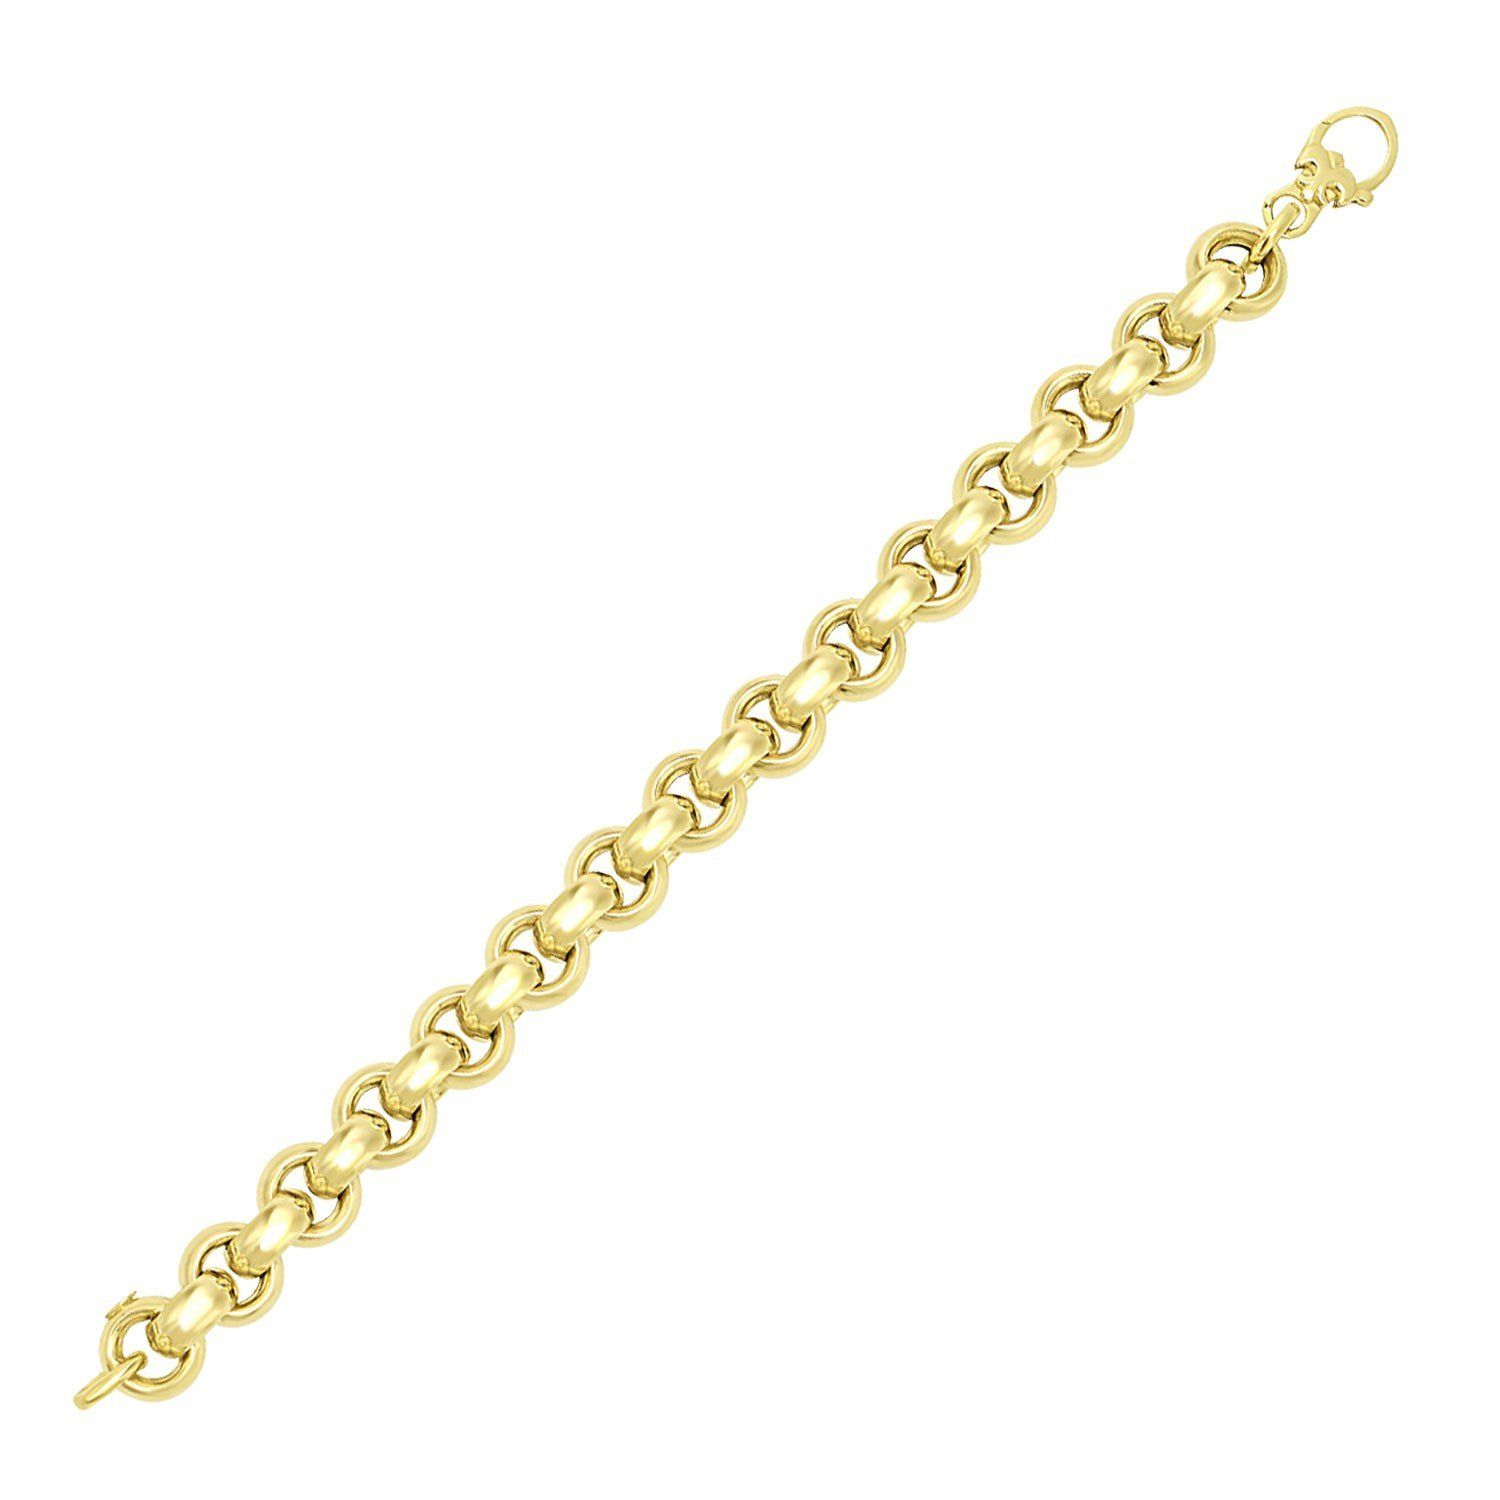 K yellow gold thick smooth rolo style bracelet rolo smooth and